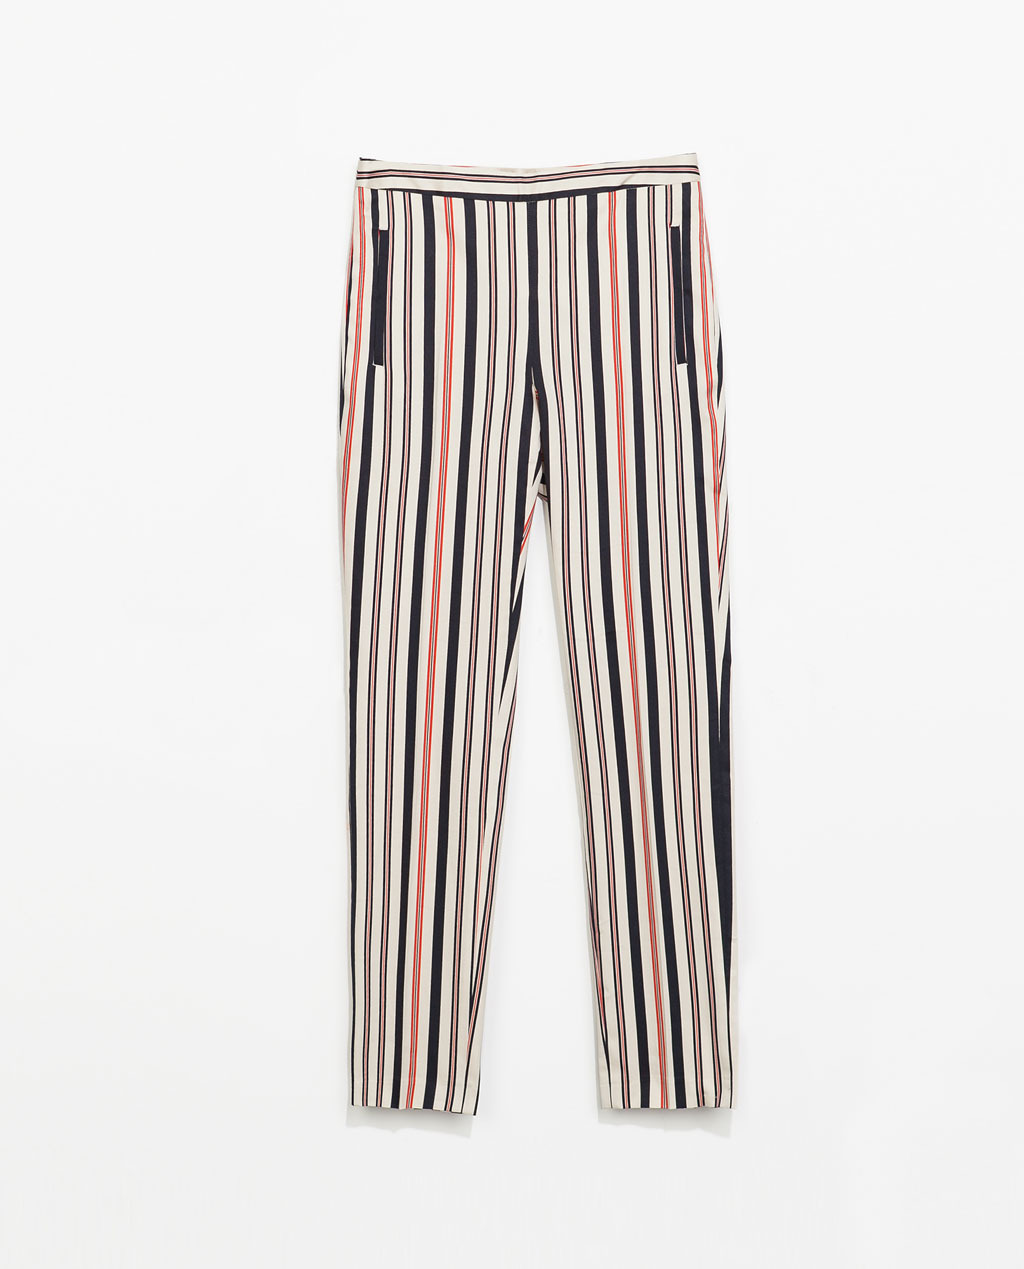 Striped Cropped Trousers - pattern: vertical stripes; pocket detail: small back pockets; waist: mid/regular rise; occasions: casual, holiday, creative work; length: ankle length; fibres: cotton - stretch; predominant colour: multicoloured; texture group: cotton feel fabrics; fit: slim leg; pattern type: fabric; style: standard; season: s/s 2014; pattern size: standard (bottom); multicoloured: multicoloured